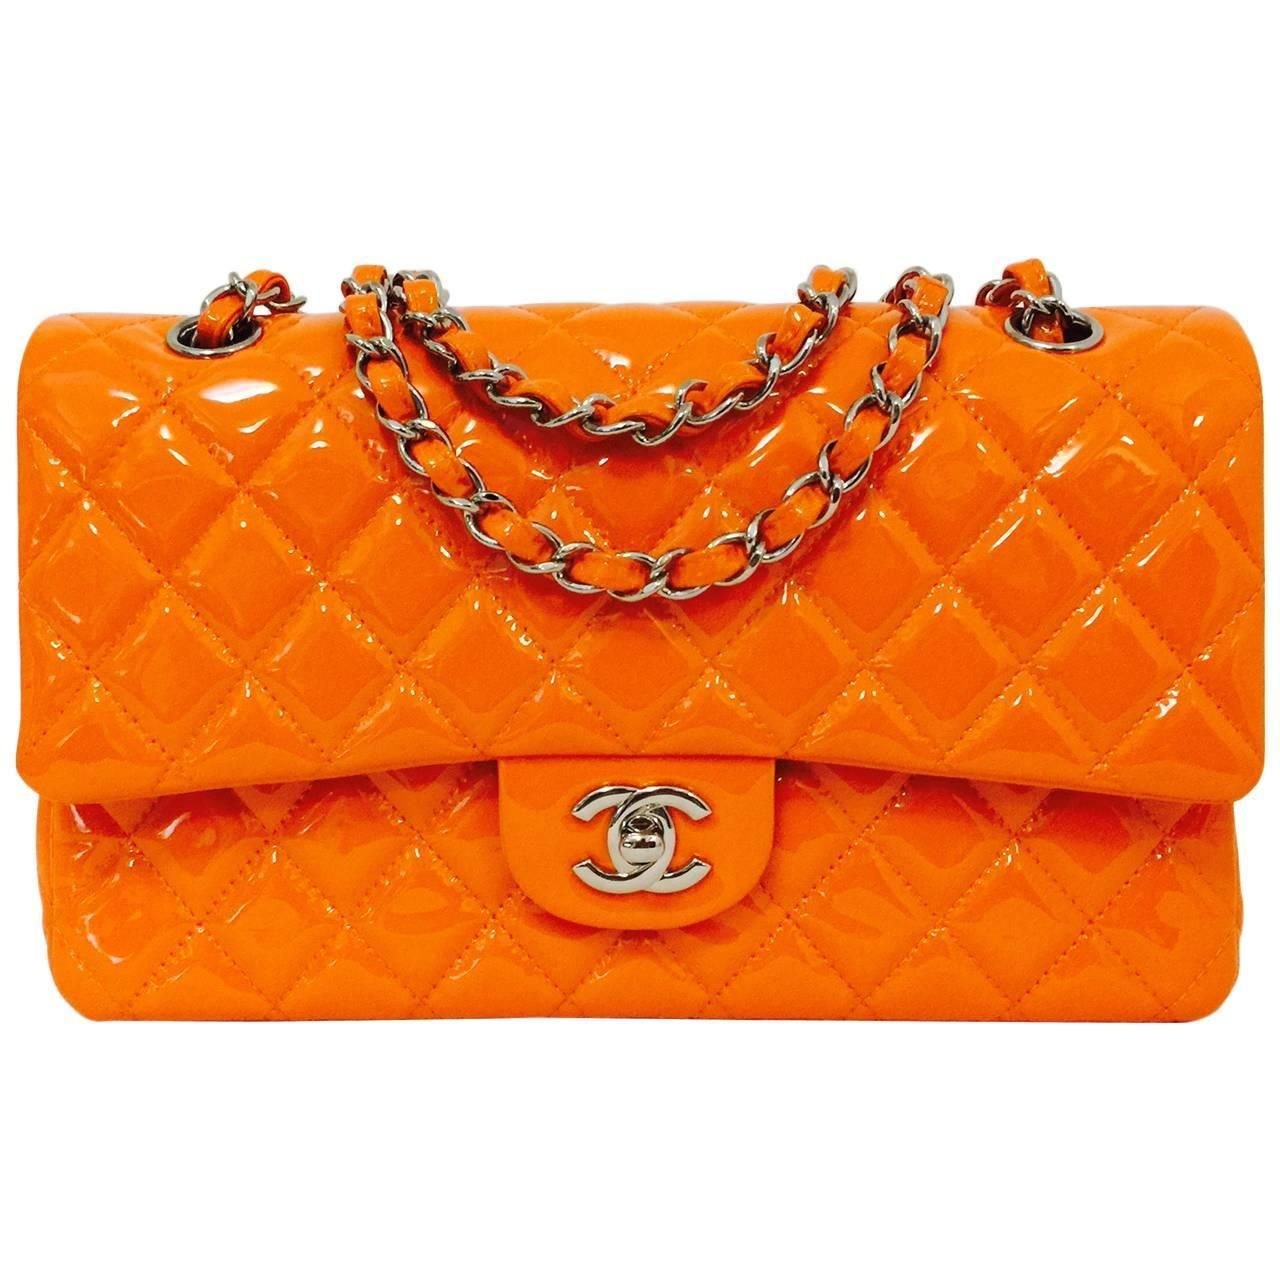 6e58cab57f08 Chanel Orange Diamond Quilted Patent Leather 2.55 Double Flap Bag ...